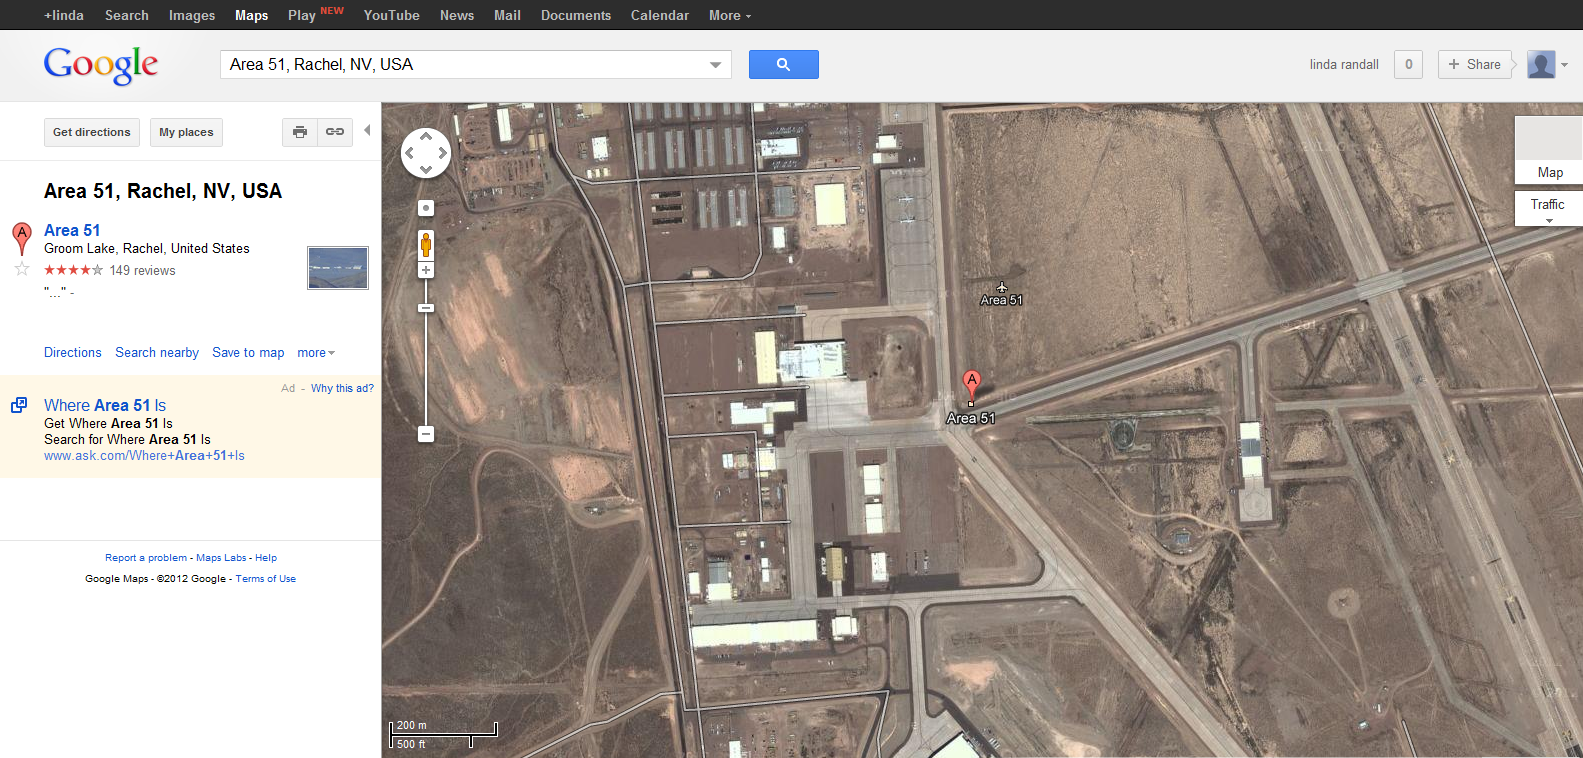 Area 51 Groom Lake Rachel NV USA Google Maps  The Idea